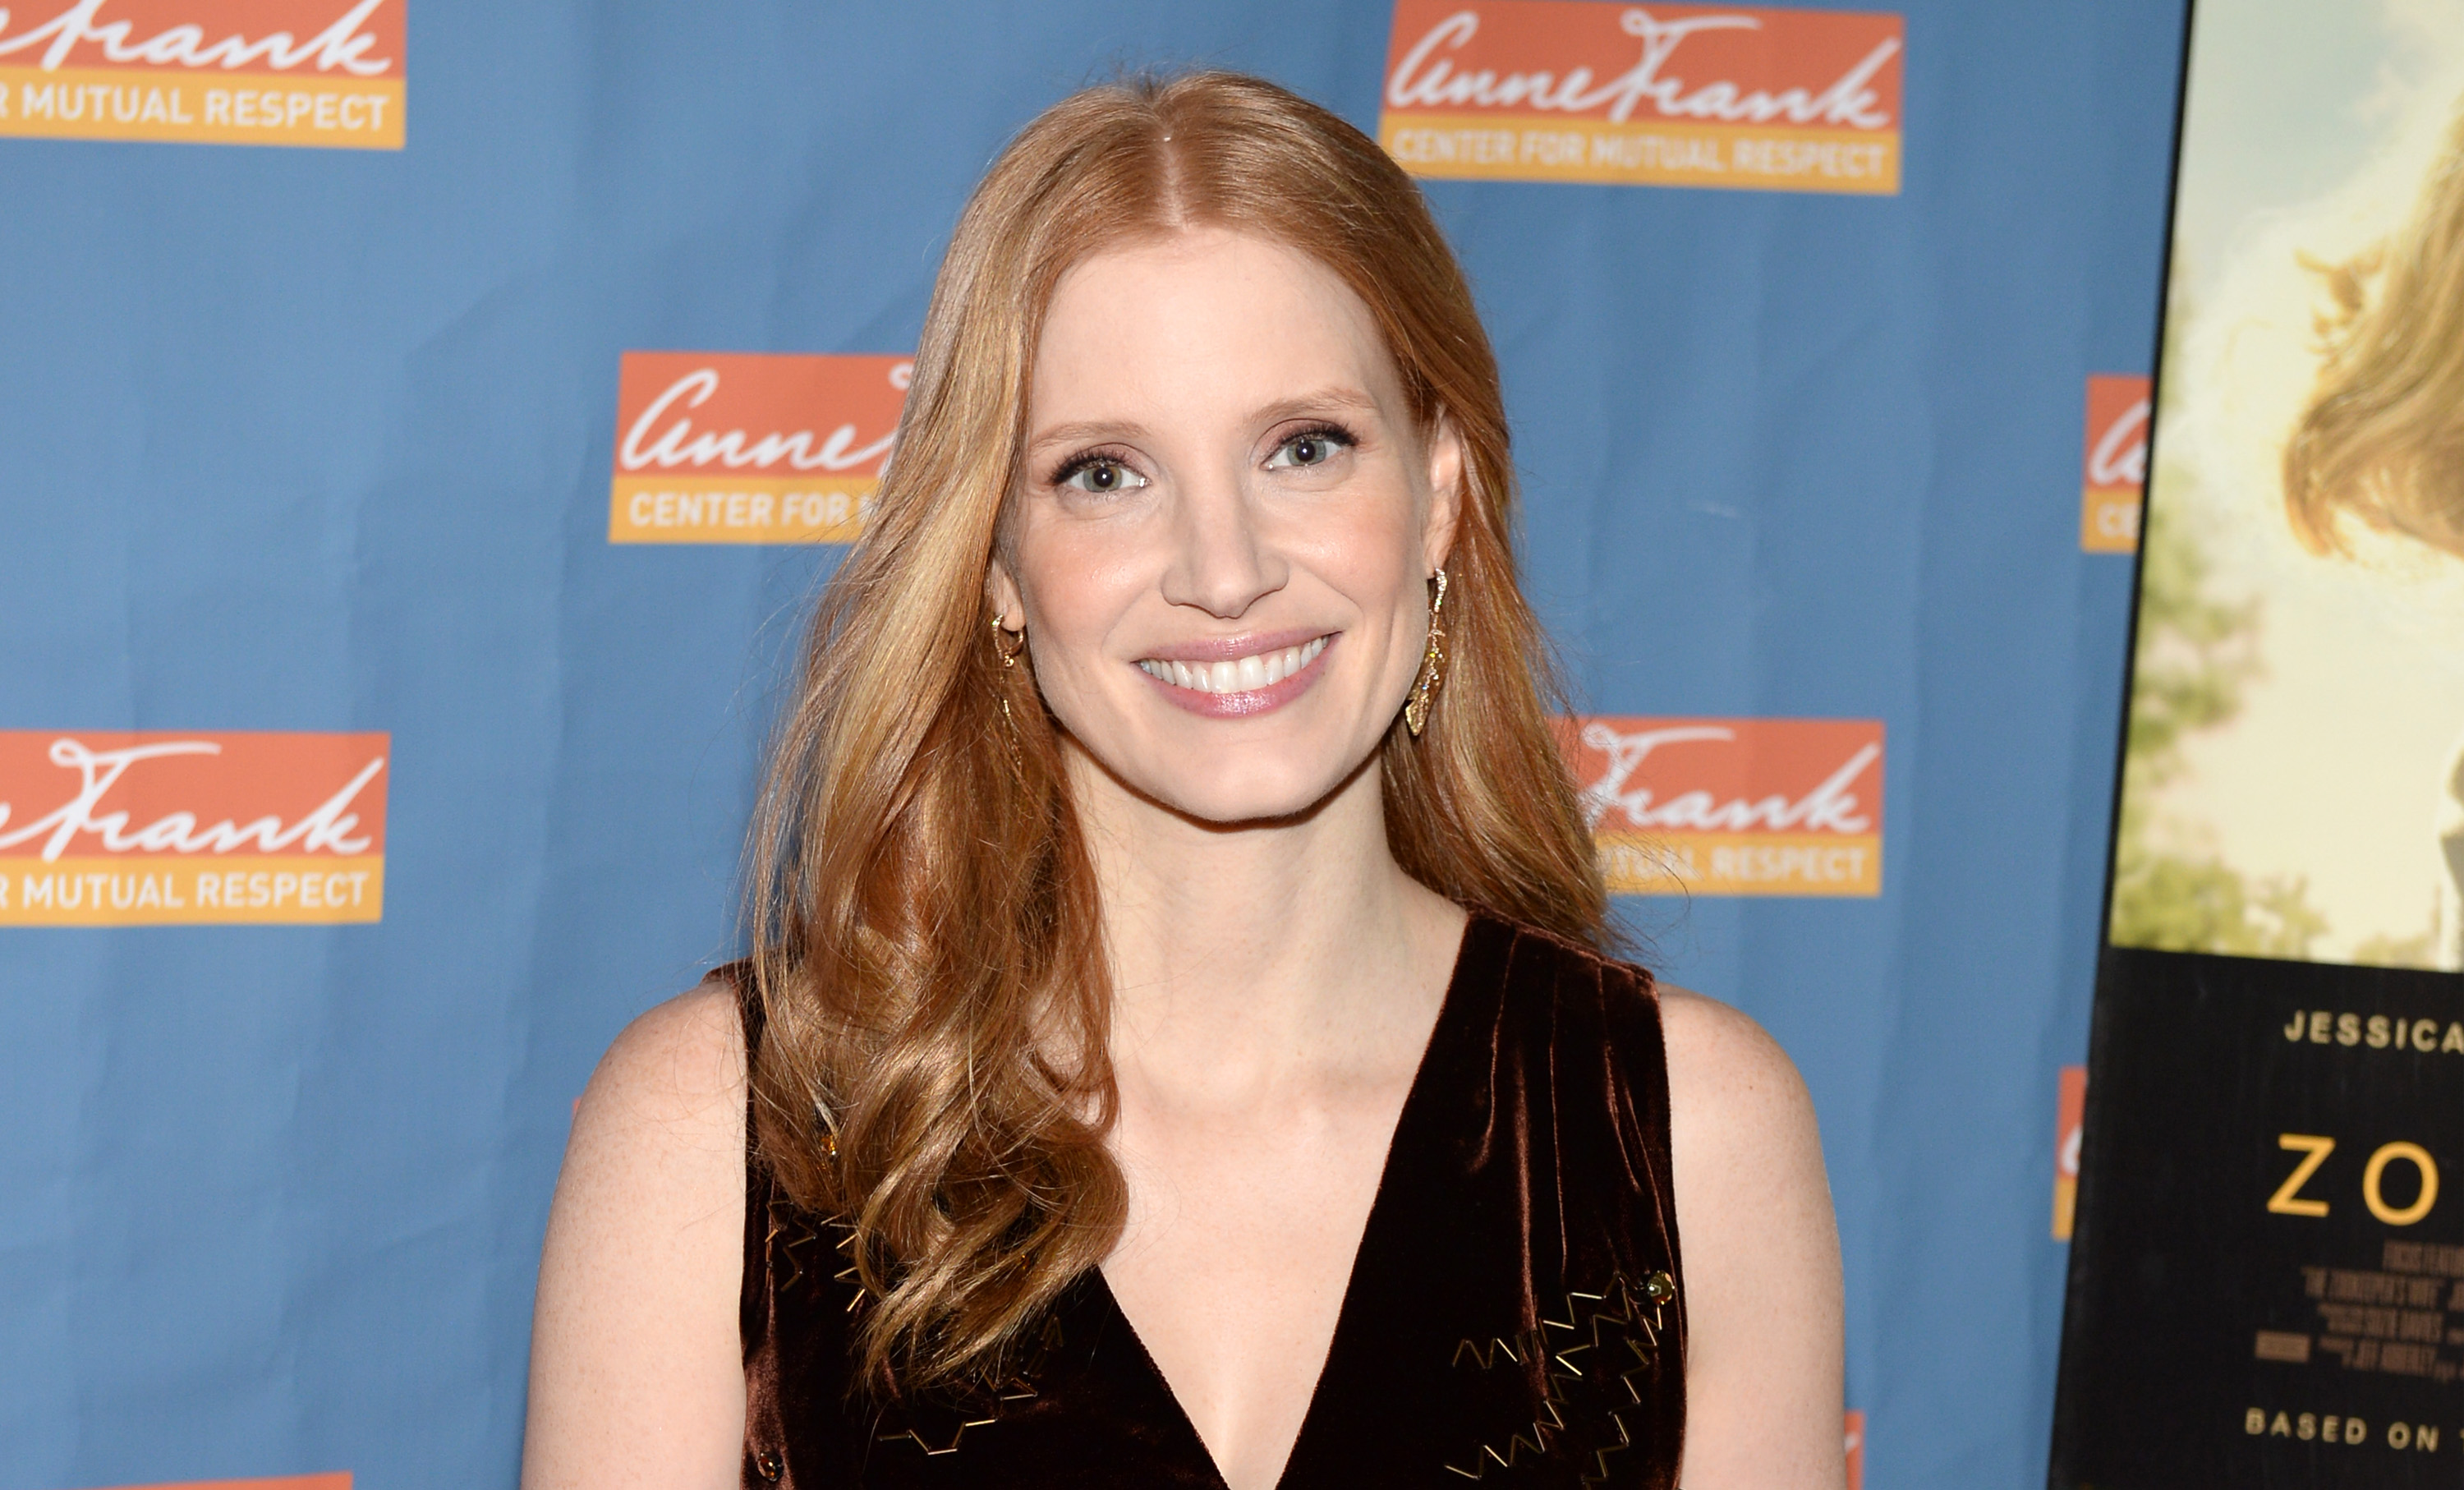 Jessica Chastain attends  The Zookeeper's Wife  special screening at Regal Union Square on March 19, 2017 in New York City.  (Photo by Andrew Toth/FilmMagic)